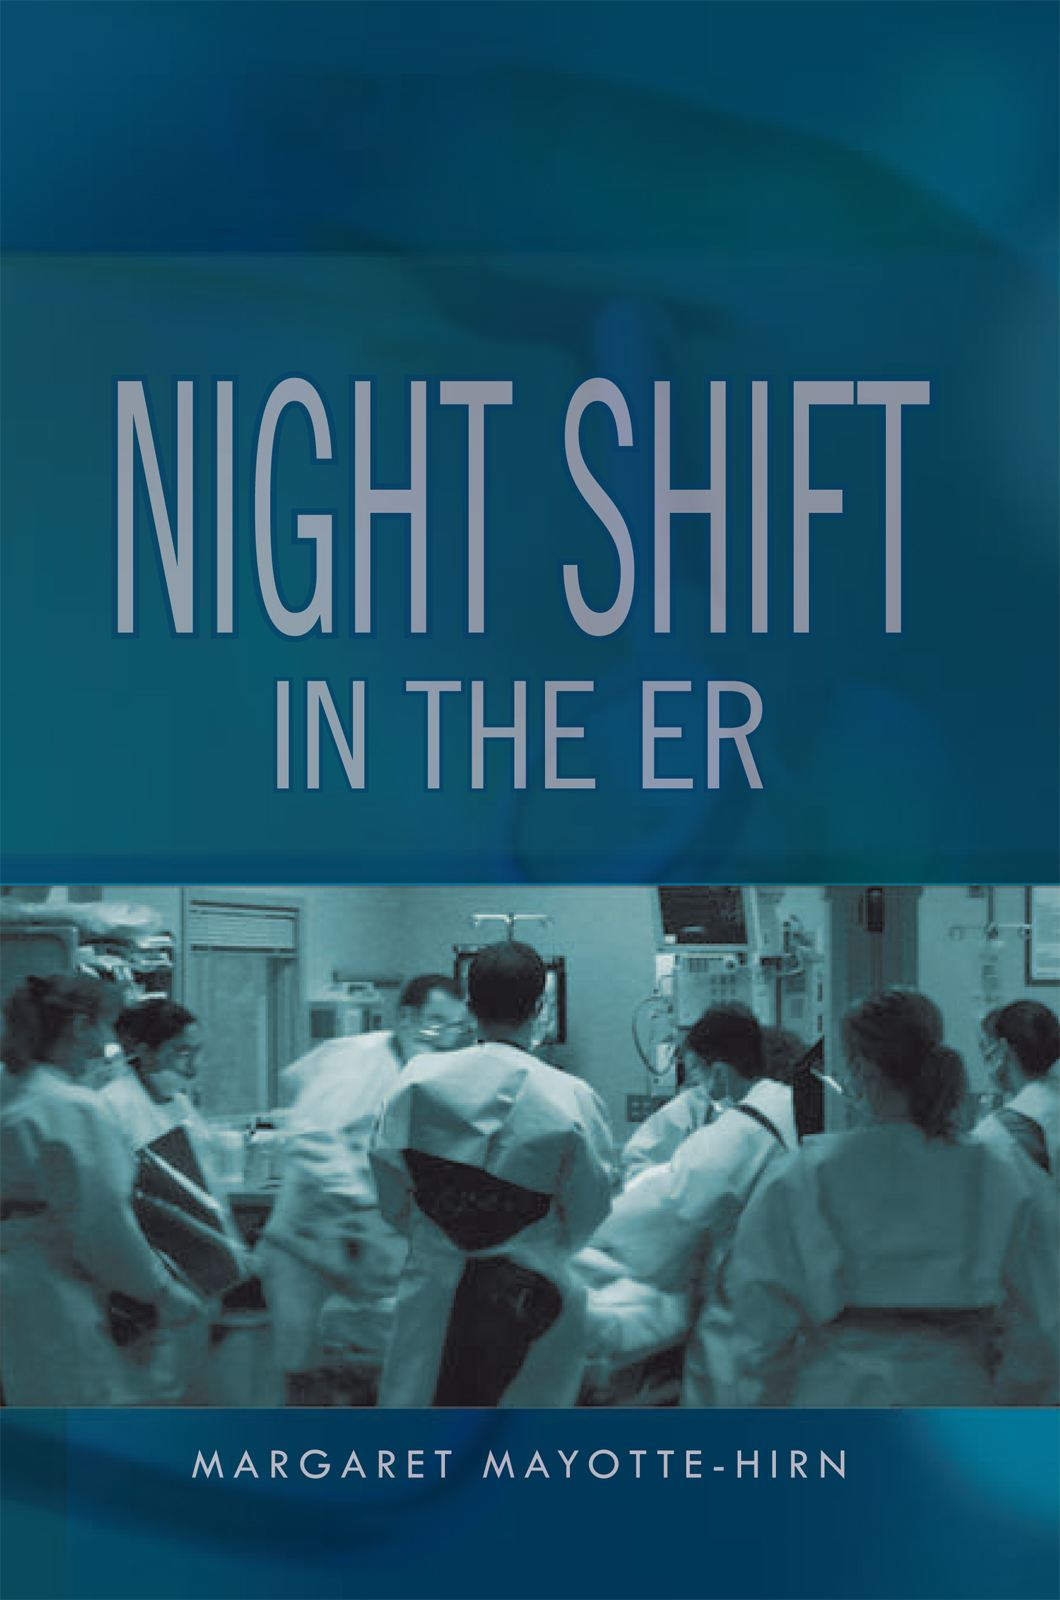 Nightshift In The ER By: Margaret Mayotte-Hirn